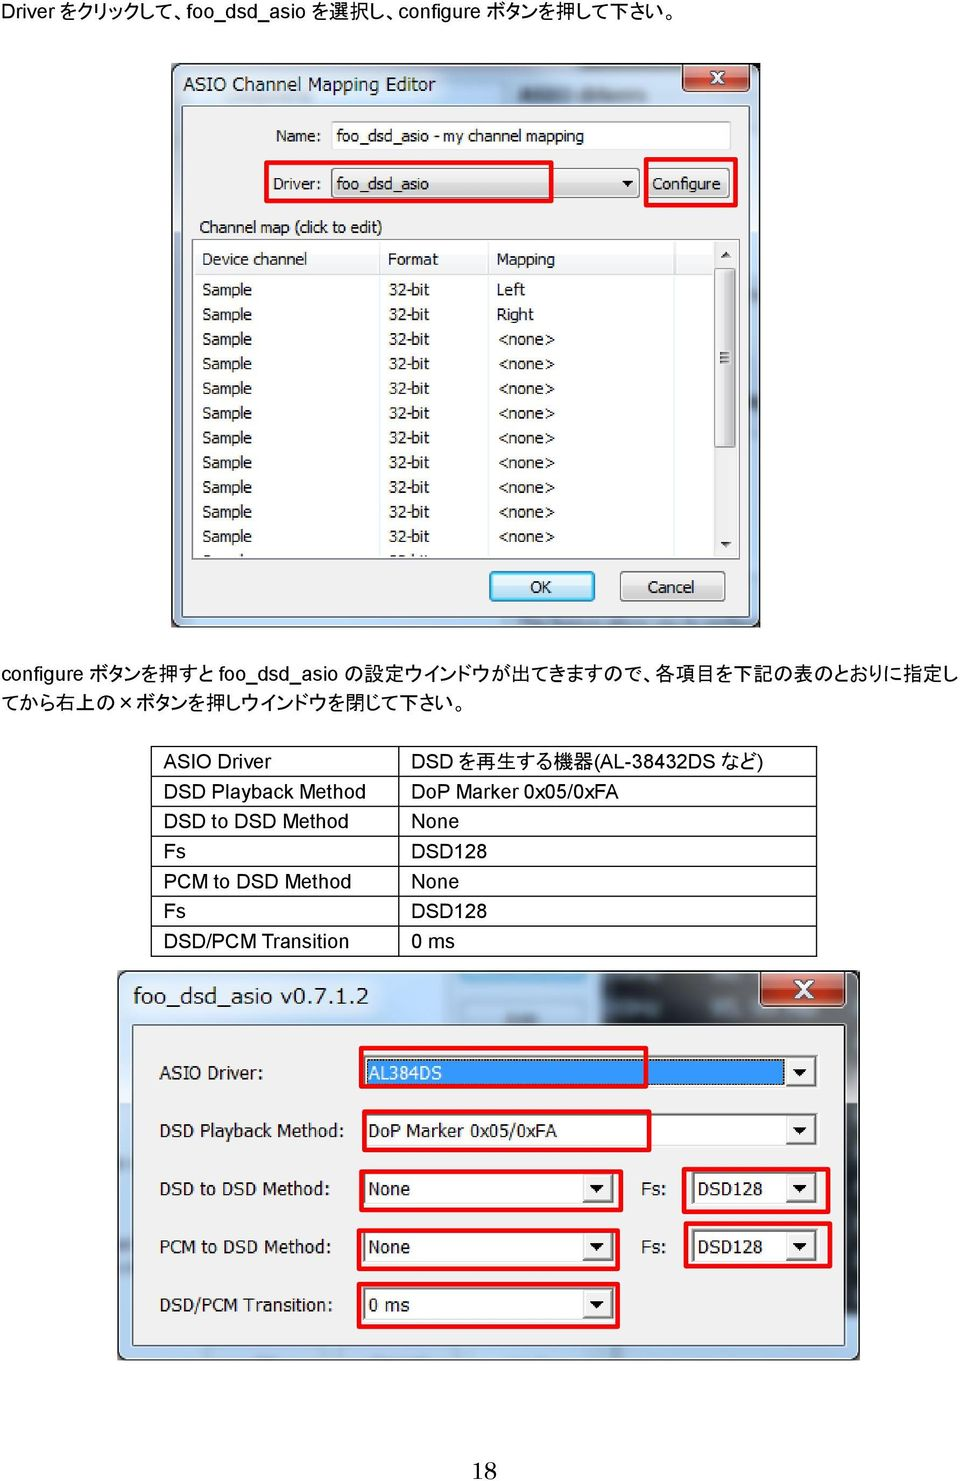 じて 下 さい ASIO Driver DSD Playback Method DSD to DSD Method Fs PCM to DSD Method Fs DSD/PCM